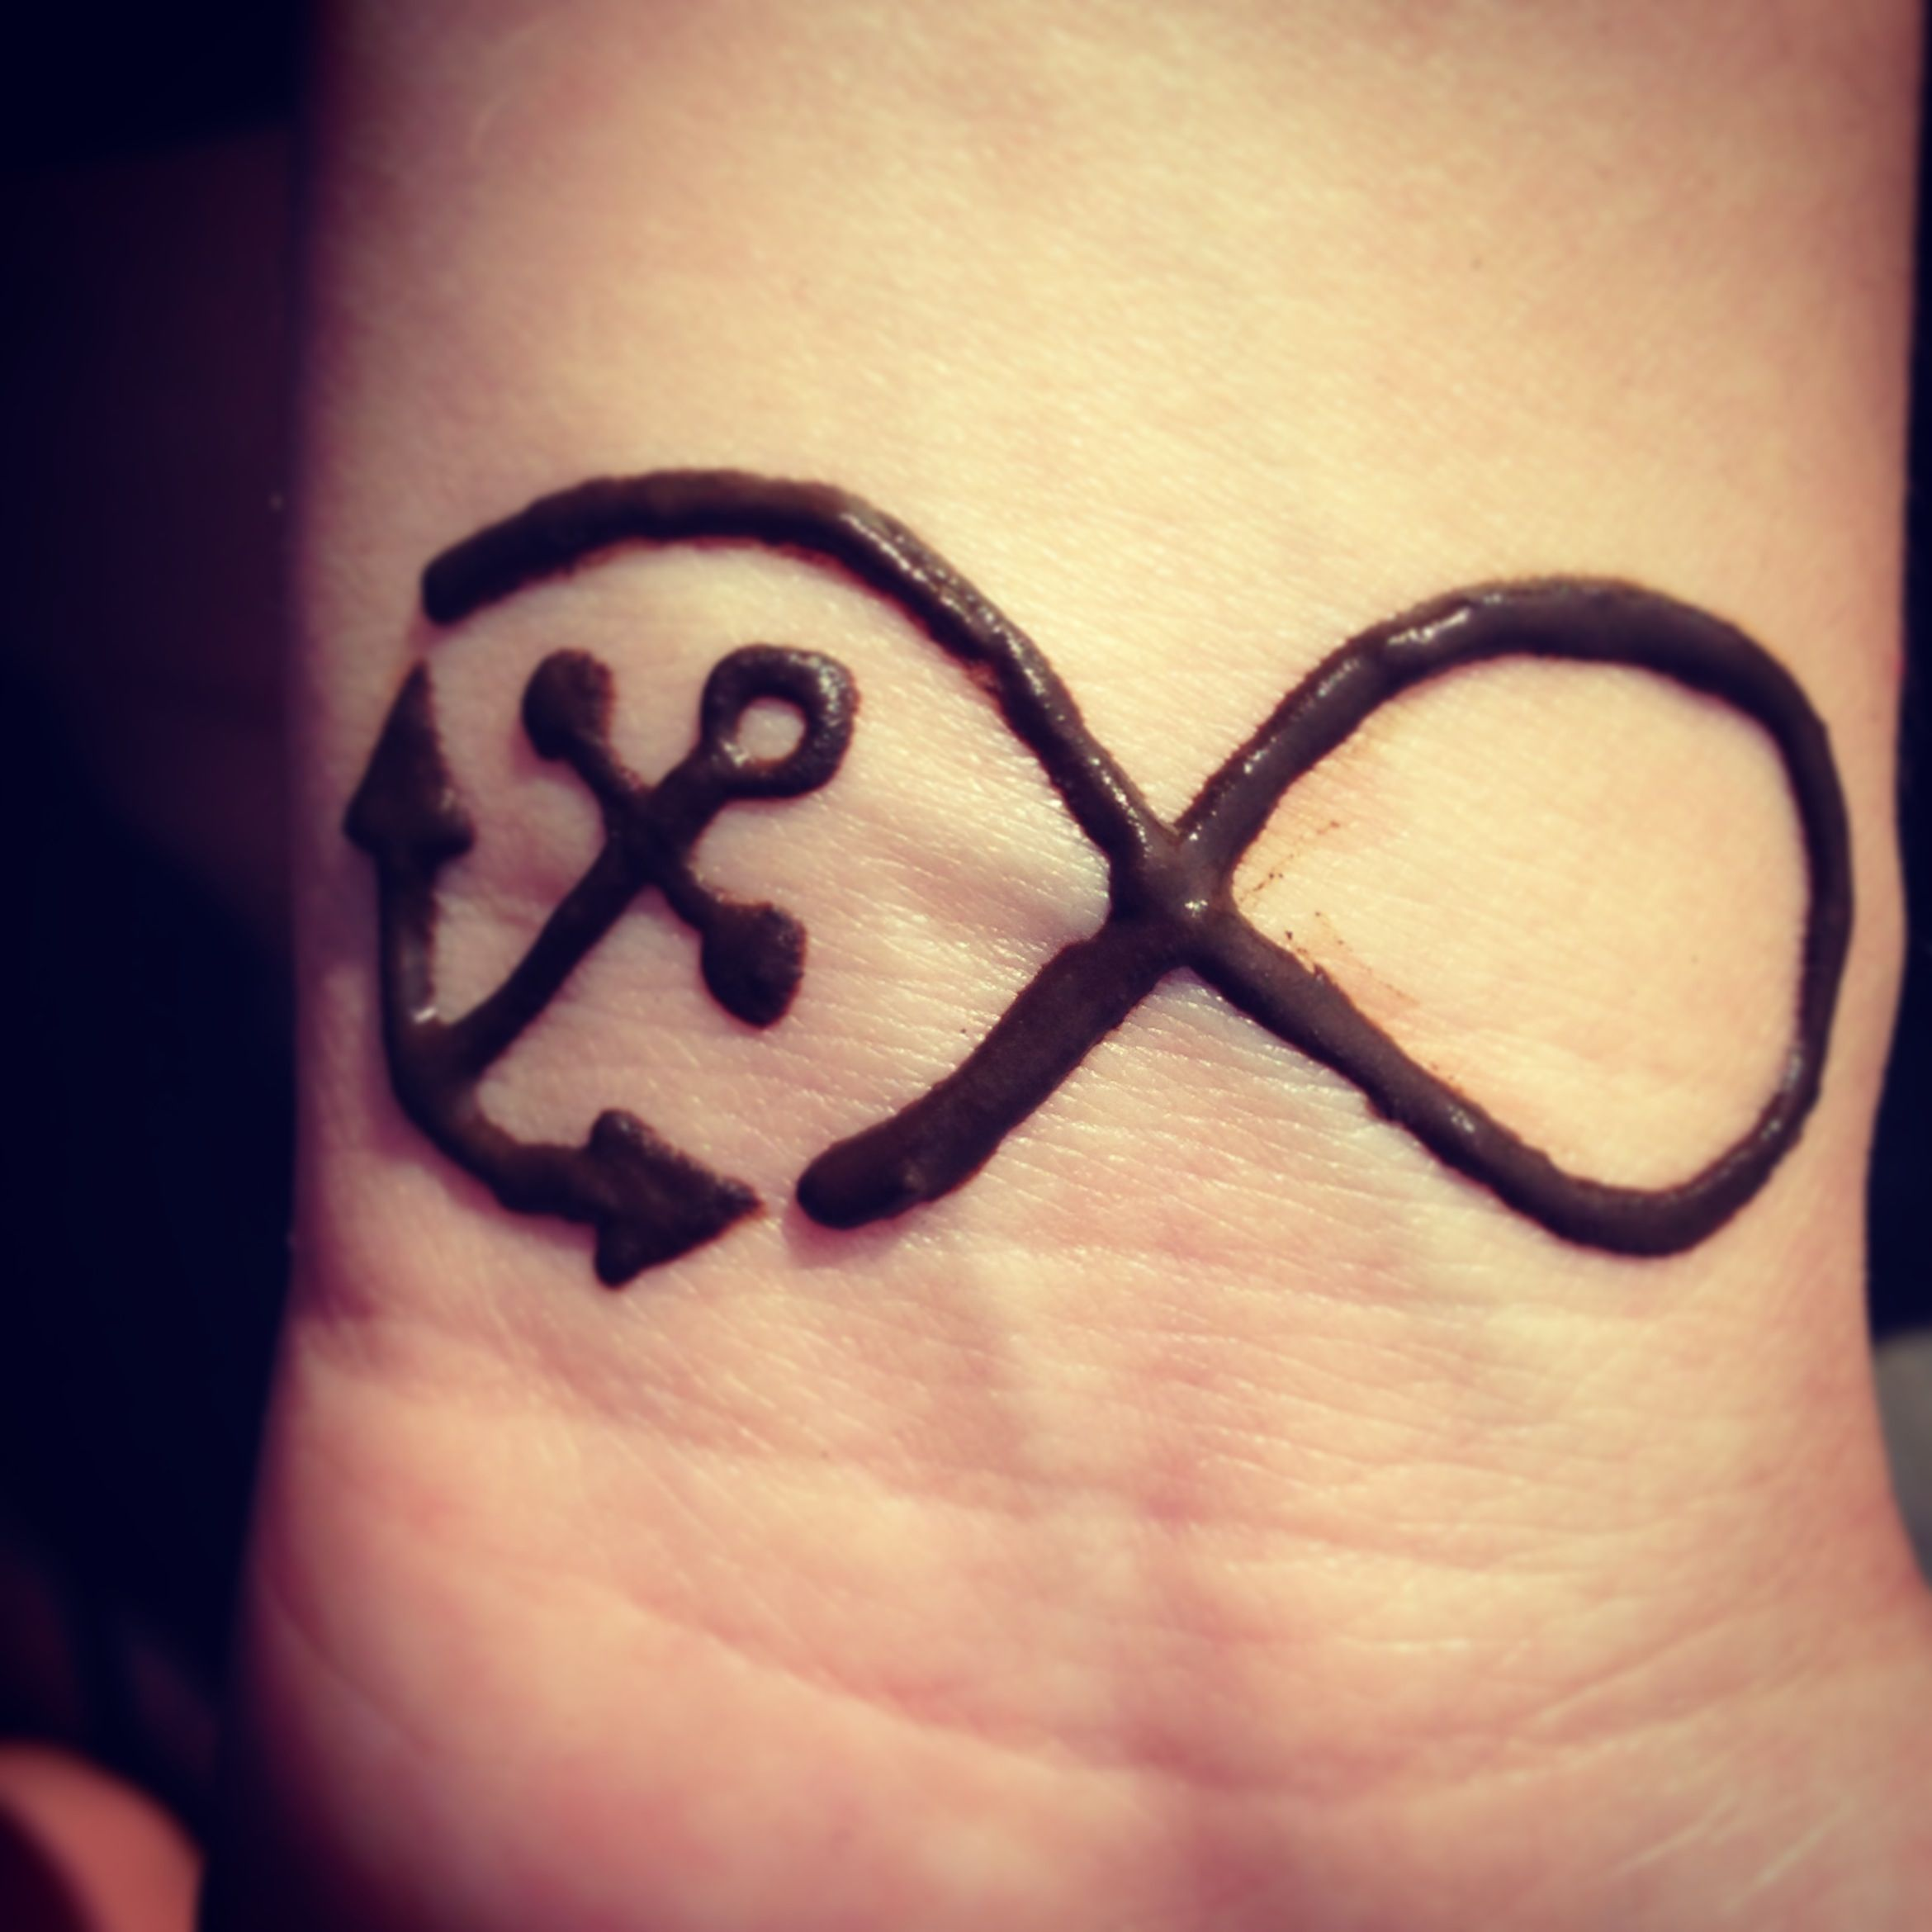 Infinity Wrist Tattoo Designs Henna: Henna Tattoo #infinitysign #anchor